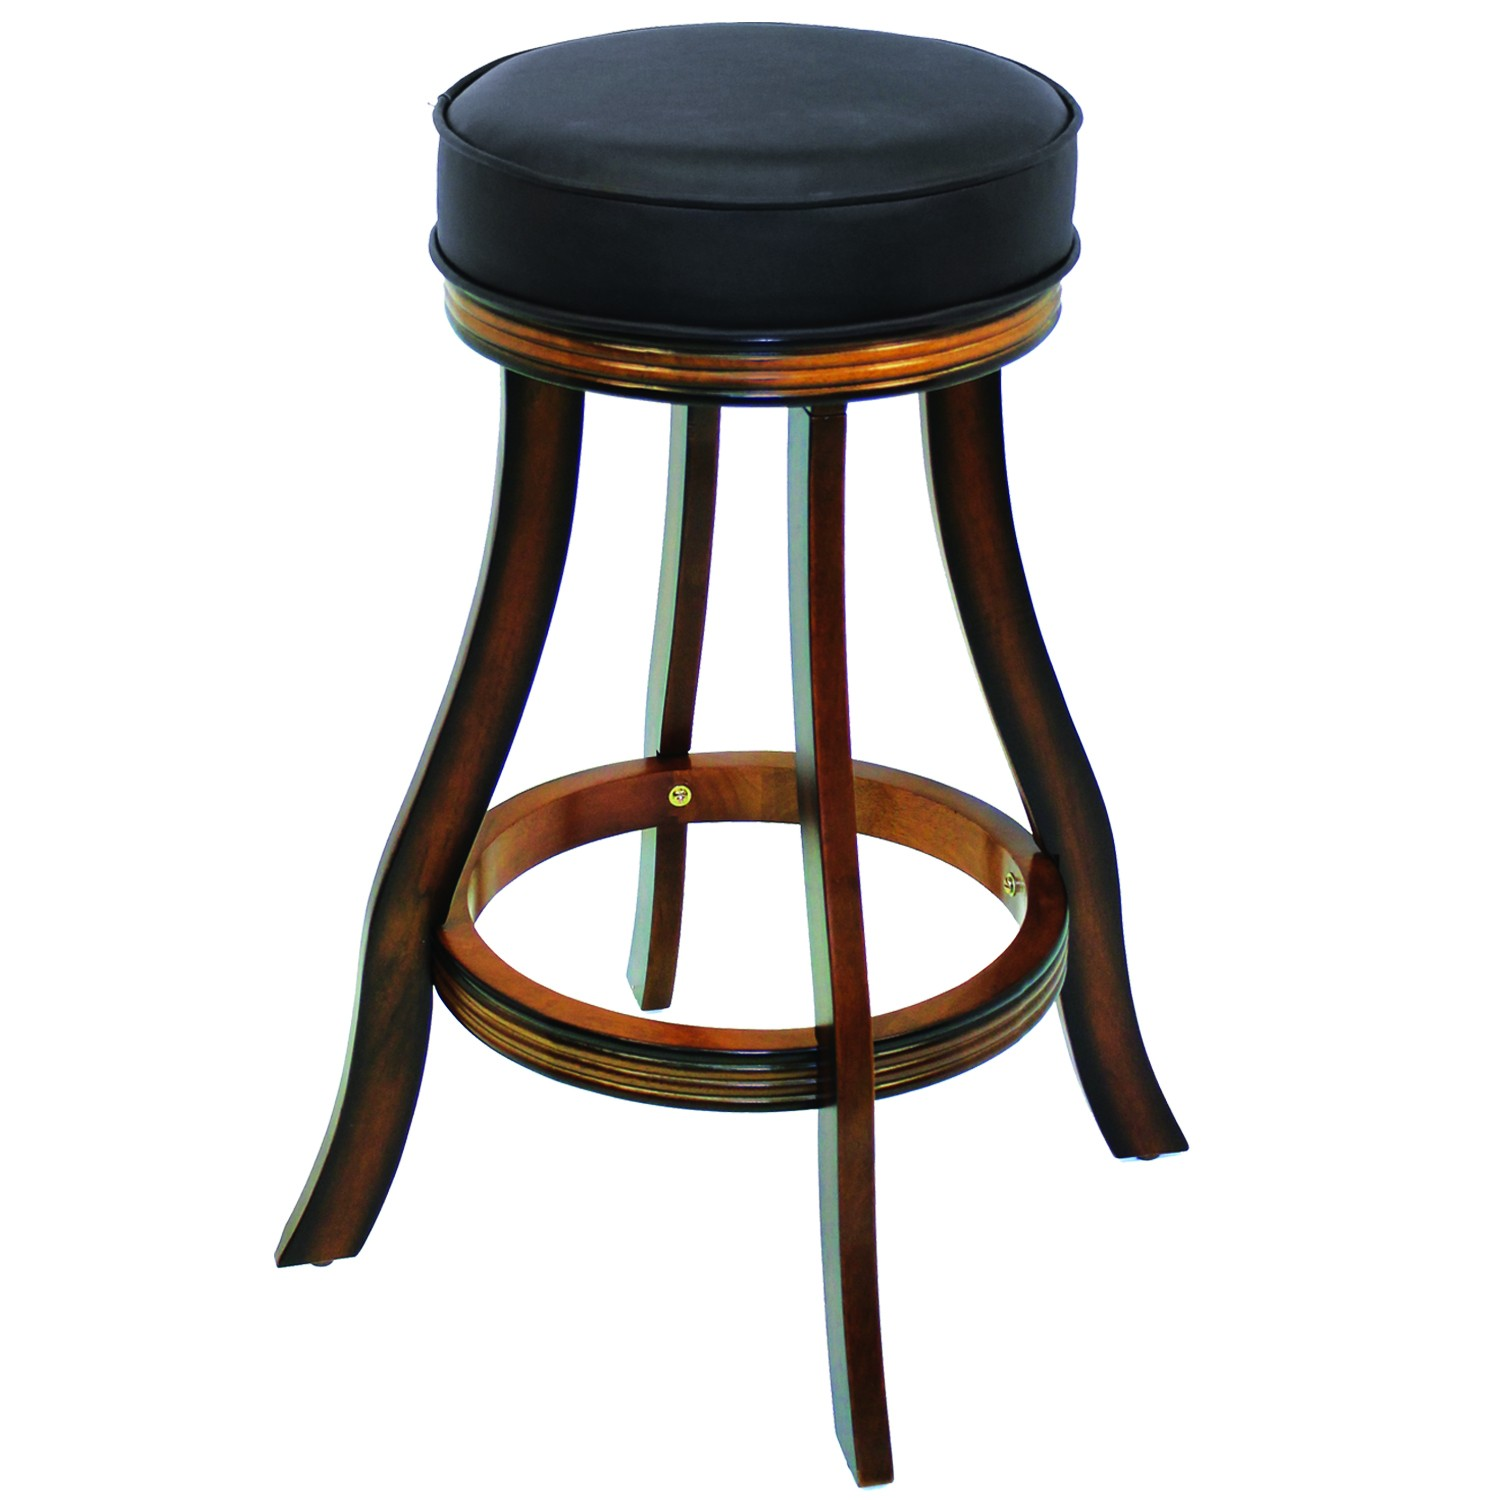 tabouret de bar bstl sans dossier chesnut tabourets en bois bar et tabourets quebecbillard. Black Bedroom Furniture Sets. Home Design Ideas